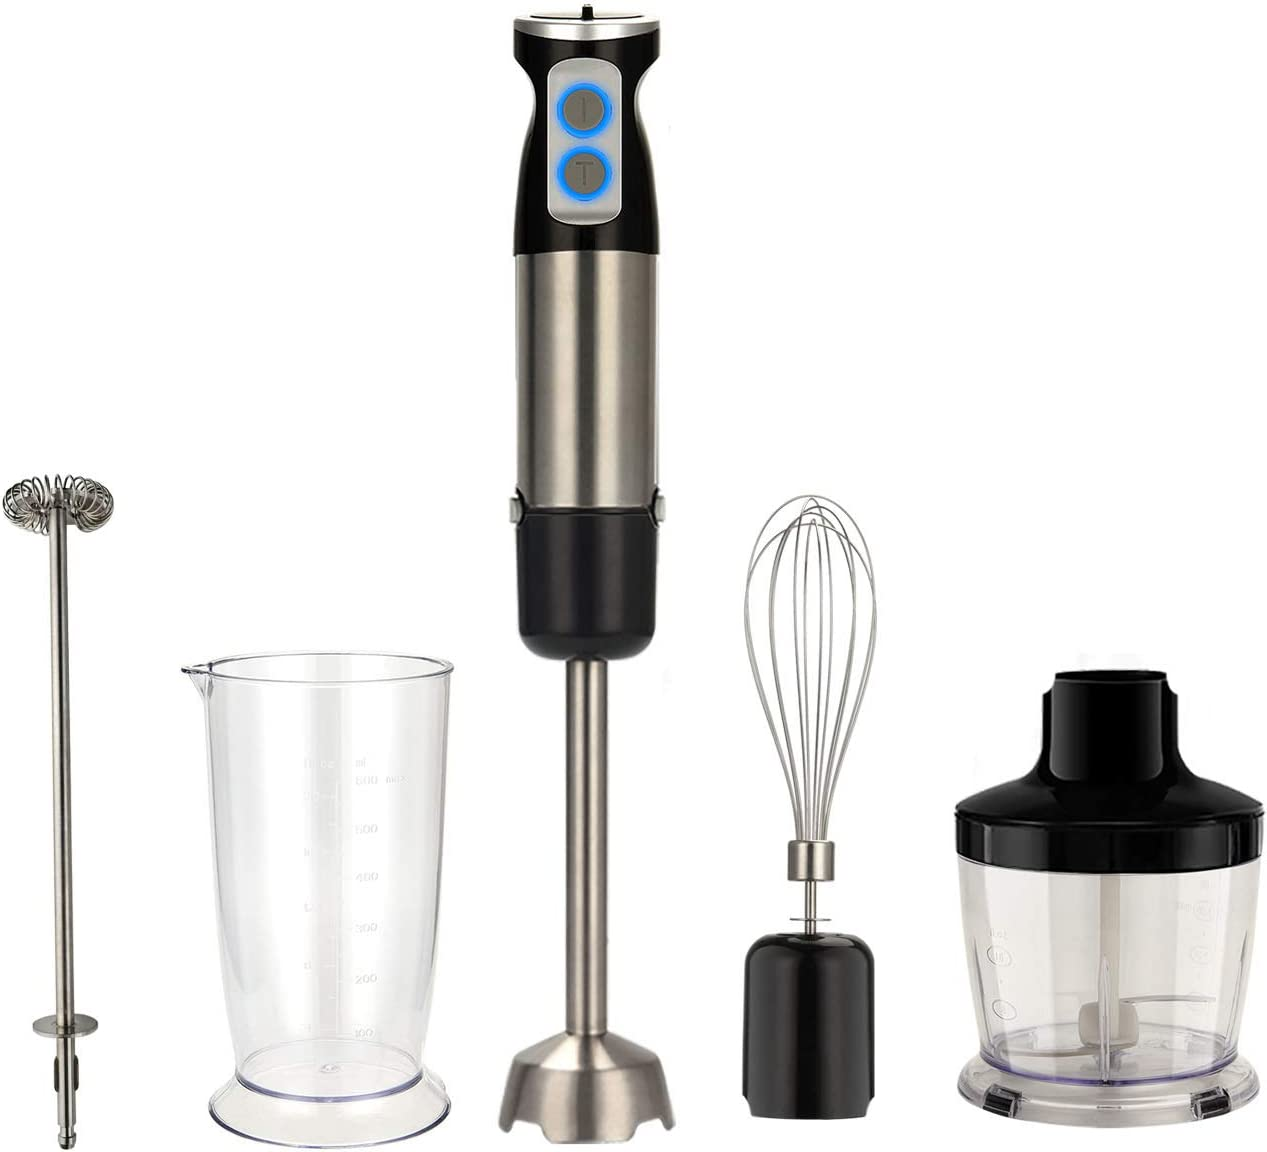 Hovico Immersion Blender, 5-in-1 Immersion Hand Blender Multifunctional, 6 Speed Stainless Steel Immersion Stick Blender with Milk Frother,500ml Chopper, Egg Whisk, 600ml Container